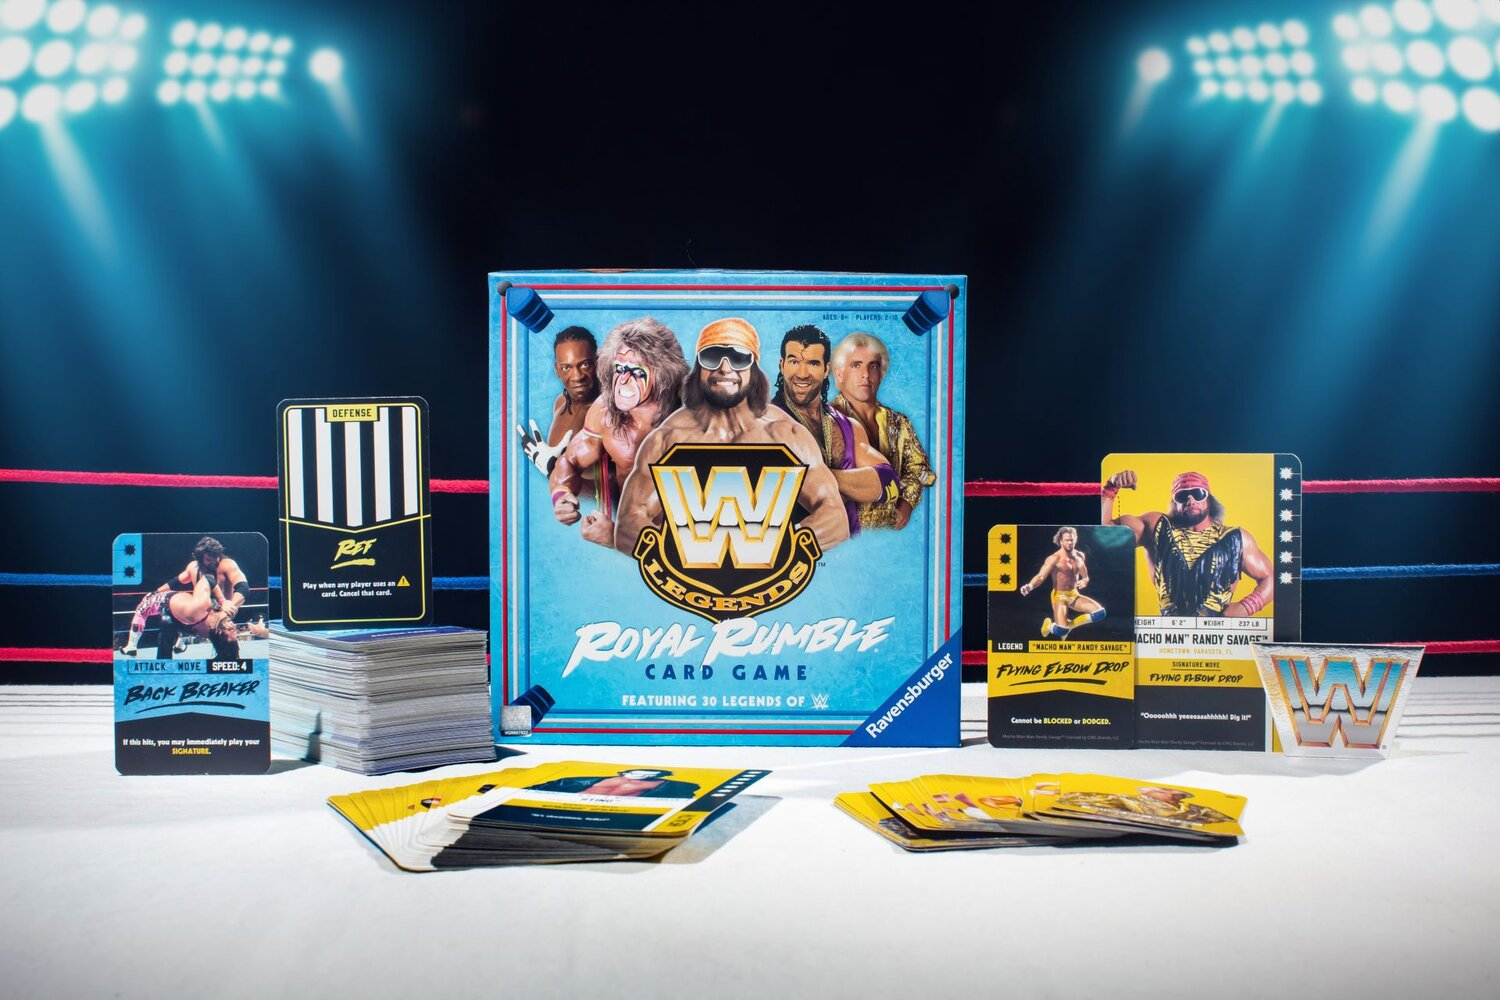 WWE LEGENDS ROYAL RUMBLE CARD GAME Is an Upcoming Game from Ravensburger